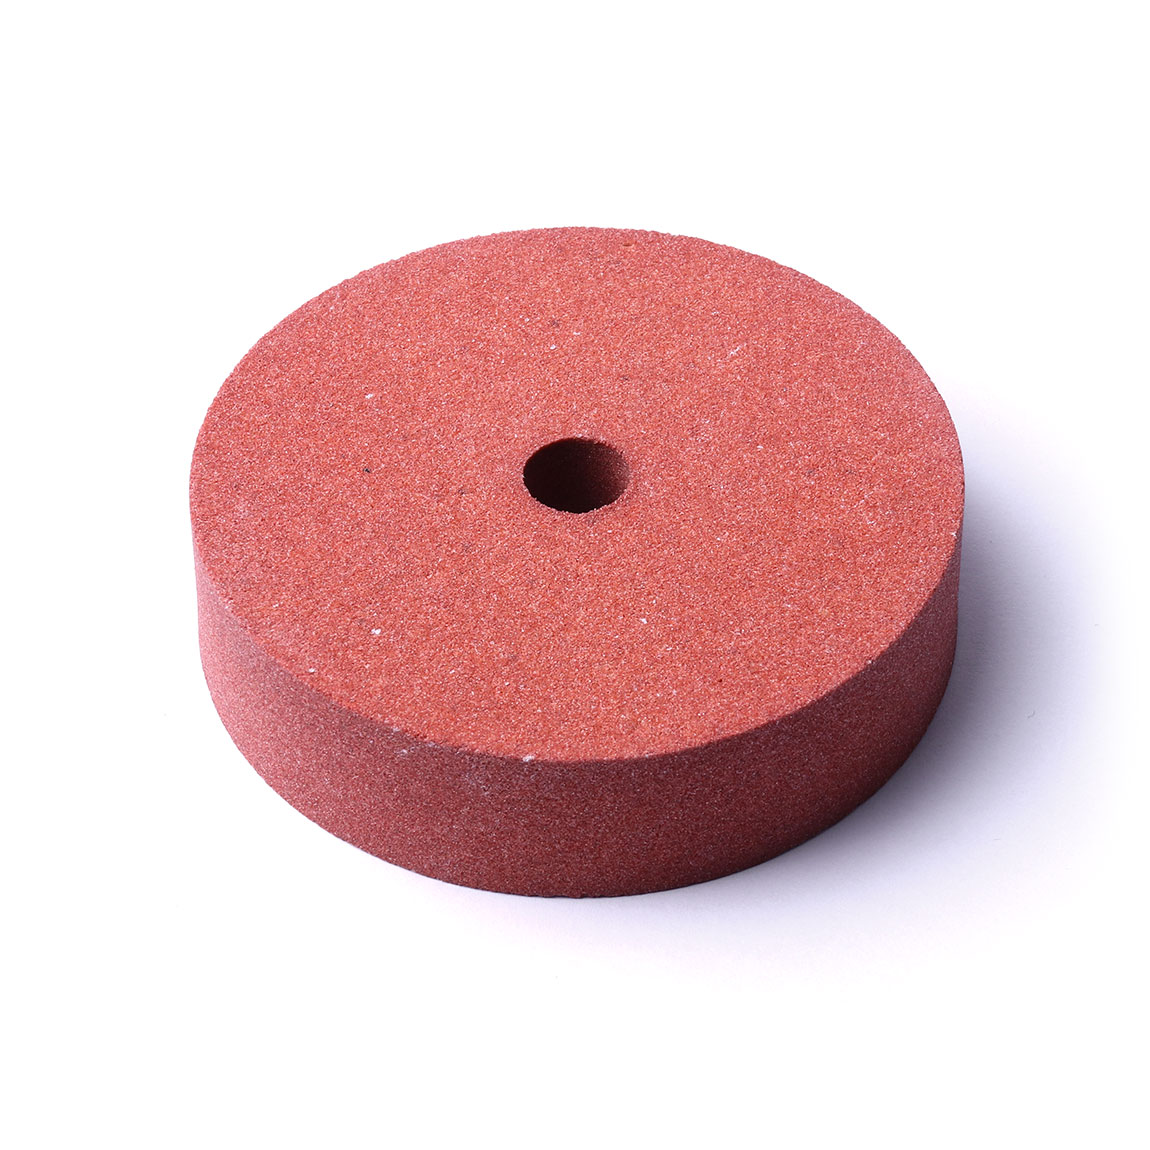 Hot 1PCS 120 Grit Grinding Wheel Abrasive Disc Polishing Metal Stone Wheel 75*10*20mm For Bench Grinders Fine Sand Production